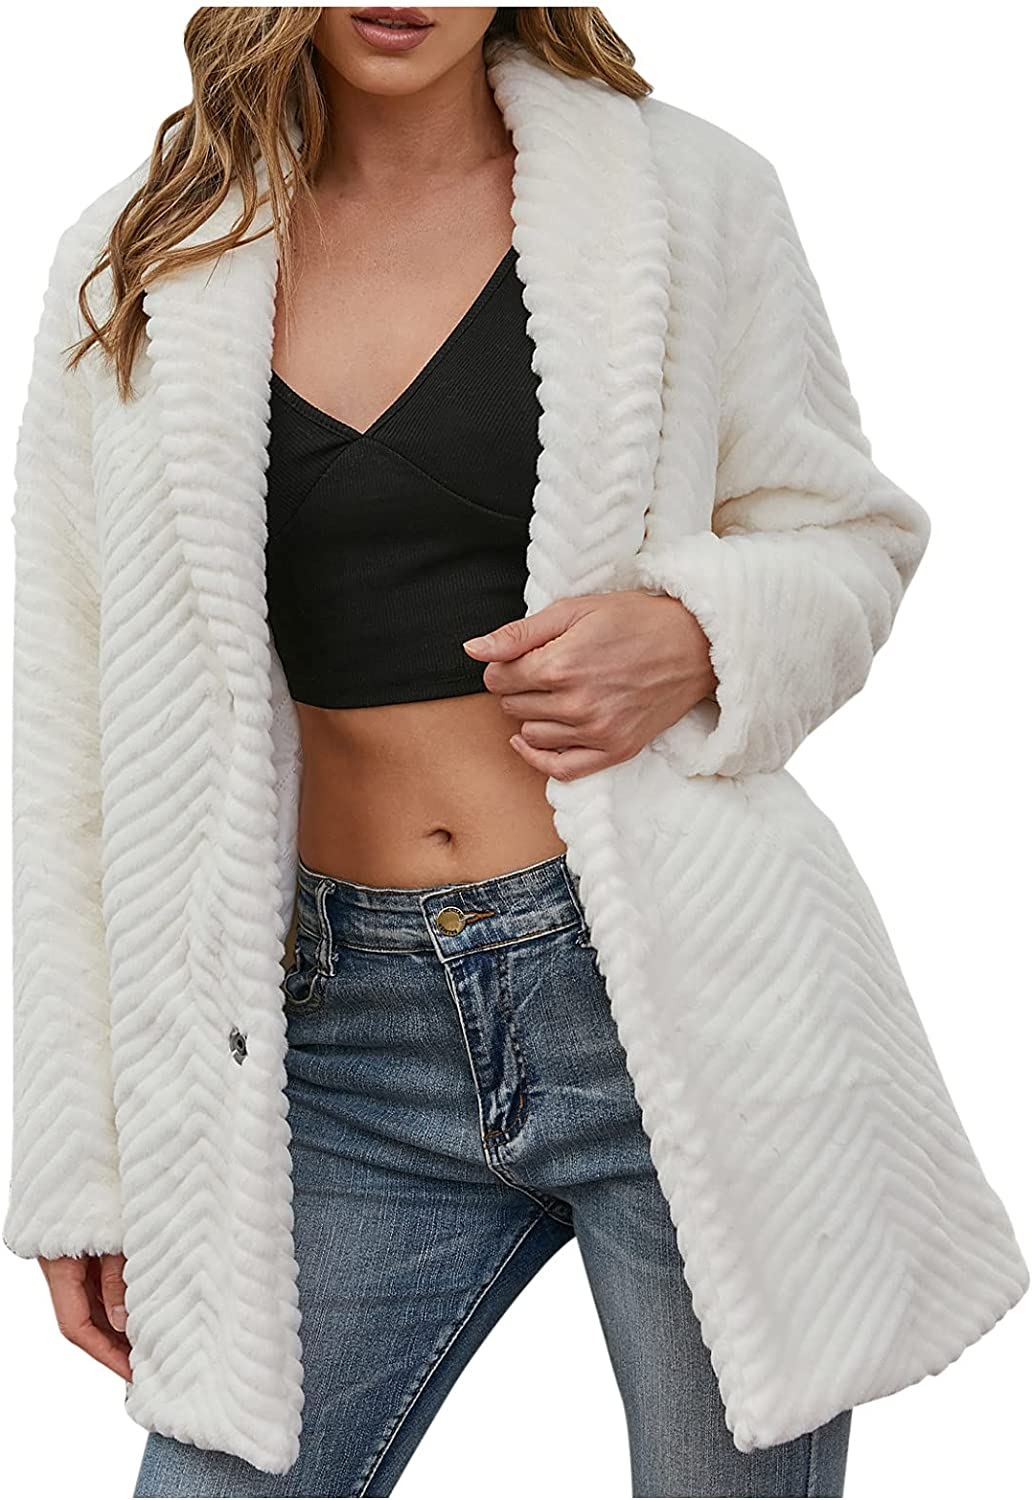 Winter Coats for Women Thick Long Overcoat P Open Popularity Front Super-cheap Cardigan